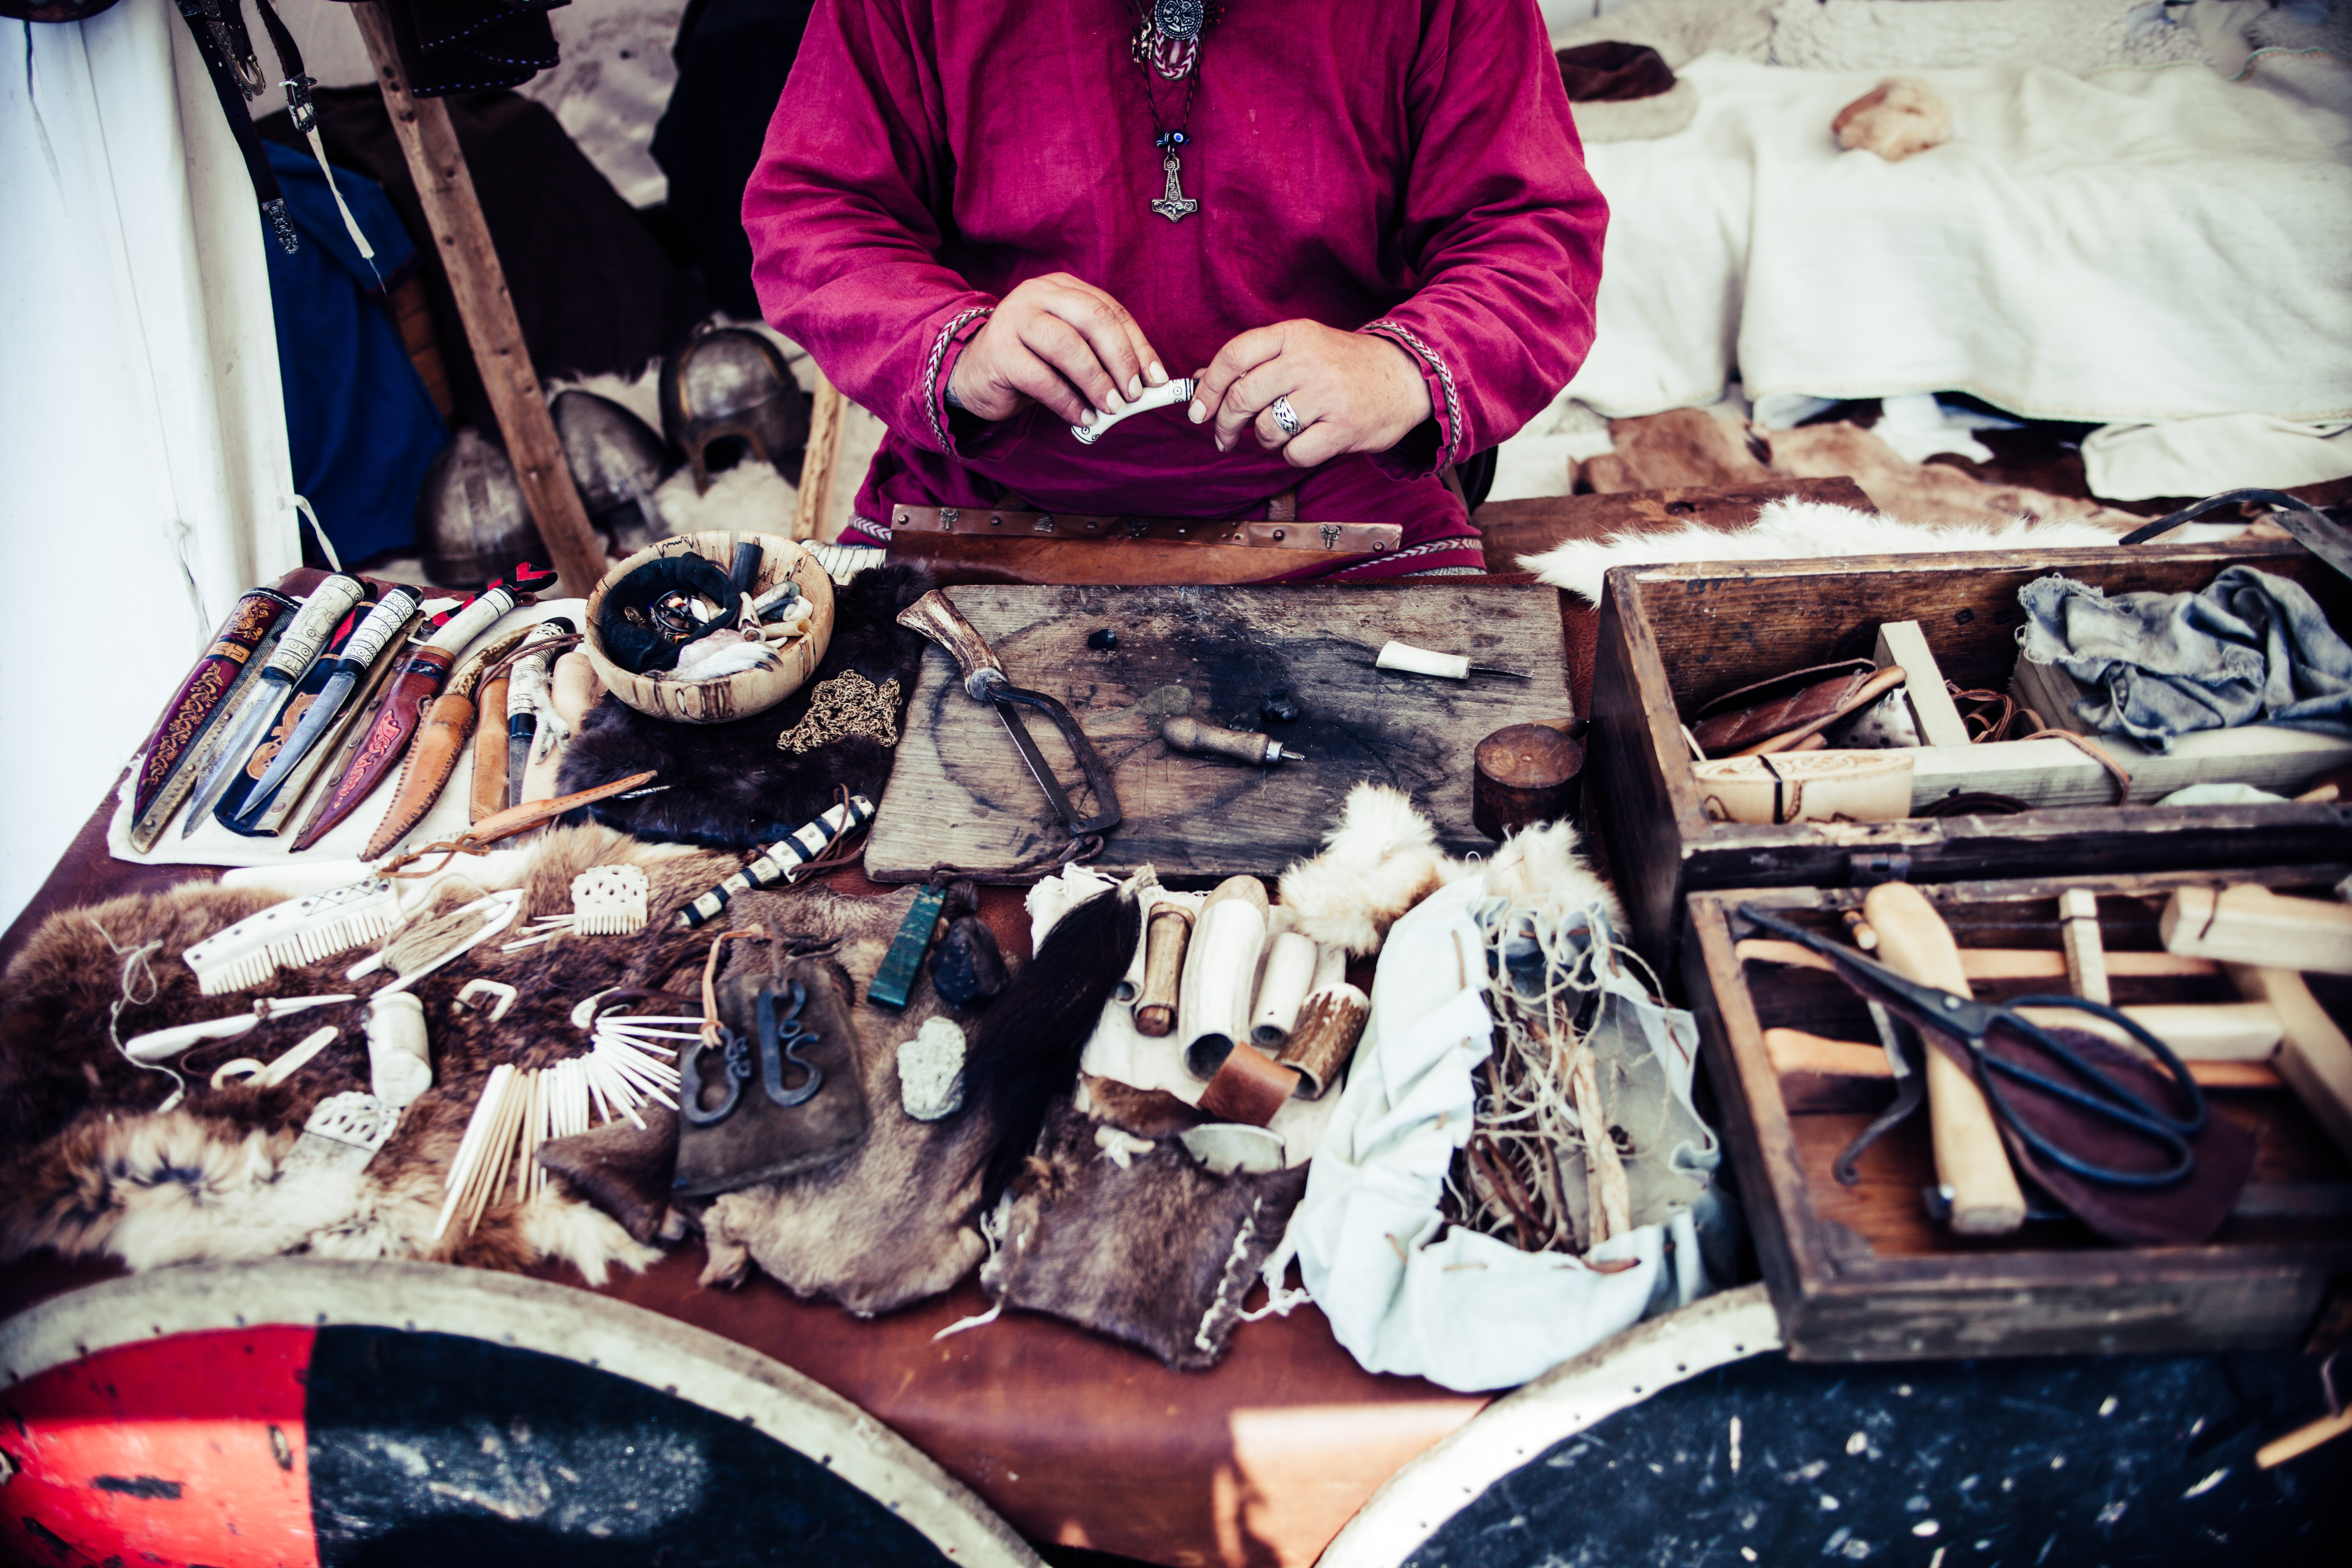 A person crafting various trinkets from leather and wood